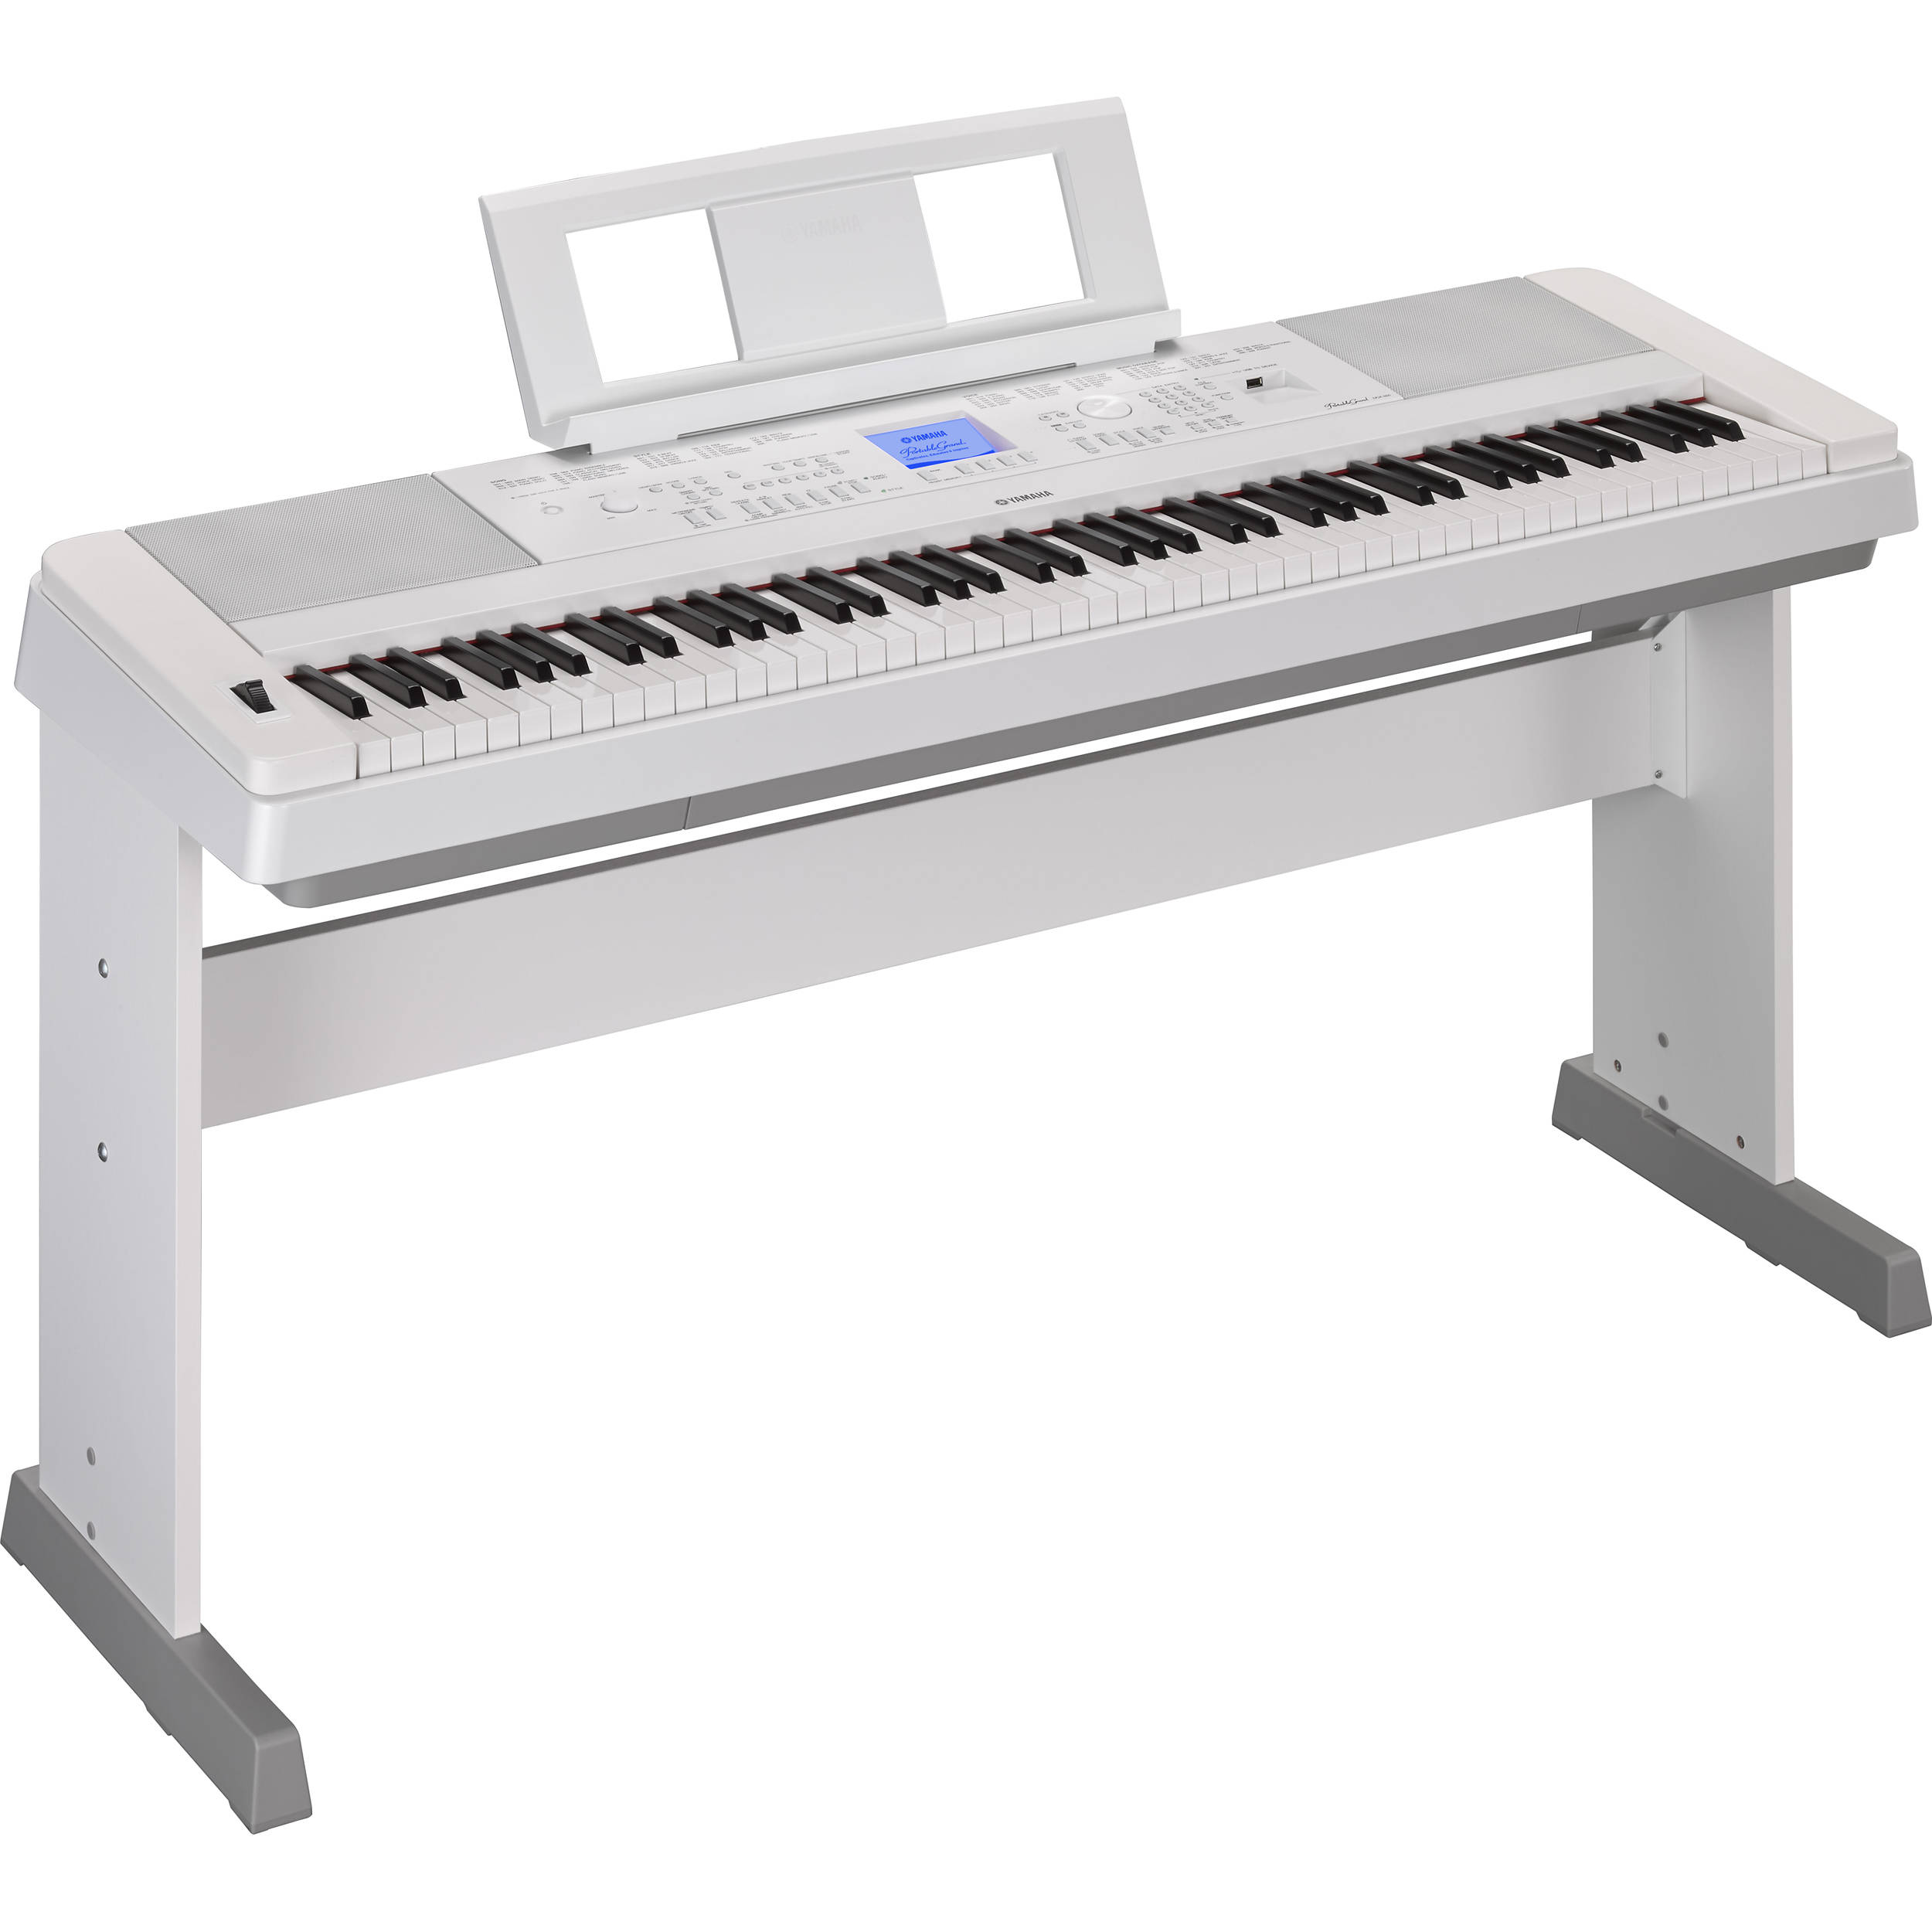 Yamaha dgx 660 portable grand digital piano white dgx660wh for Yamaha piano com